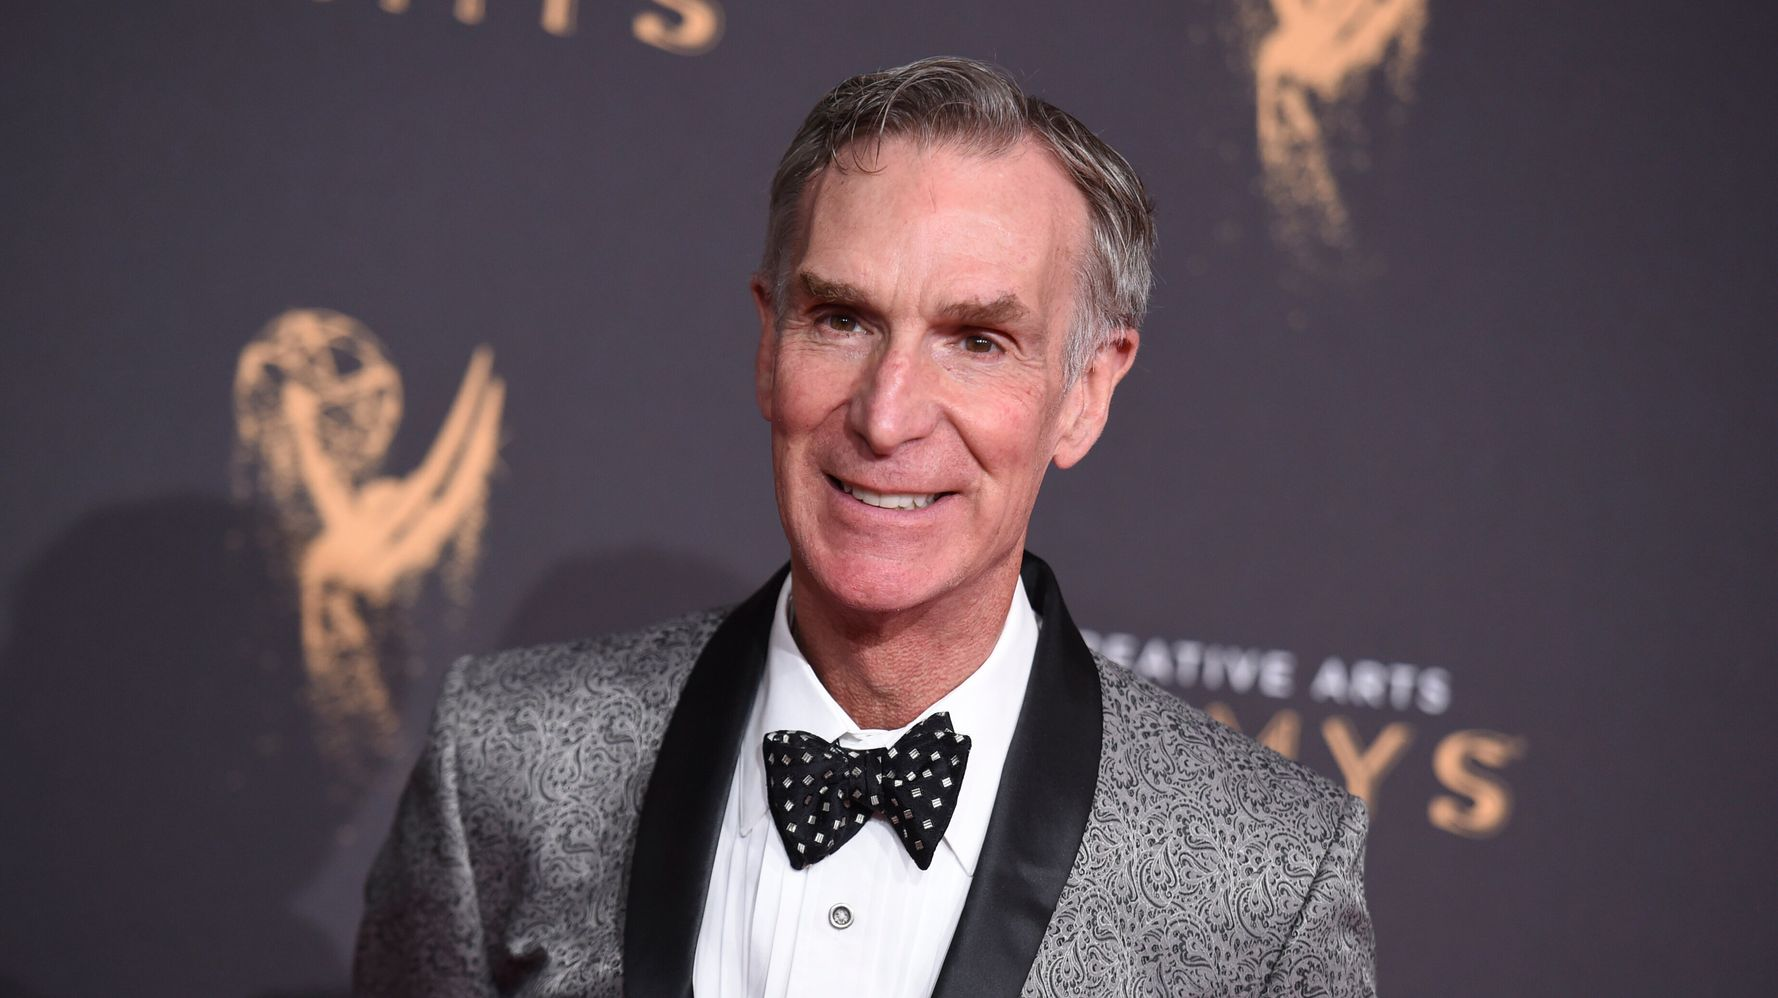 Bill Nye Slams Trump's Climate Failures: 'The U.S. Has Become A Pariah'